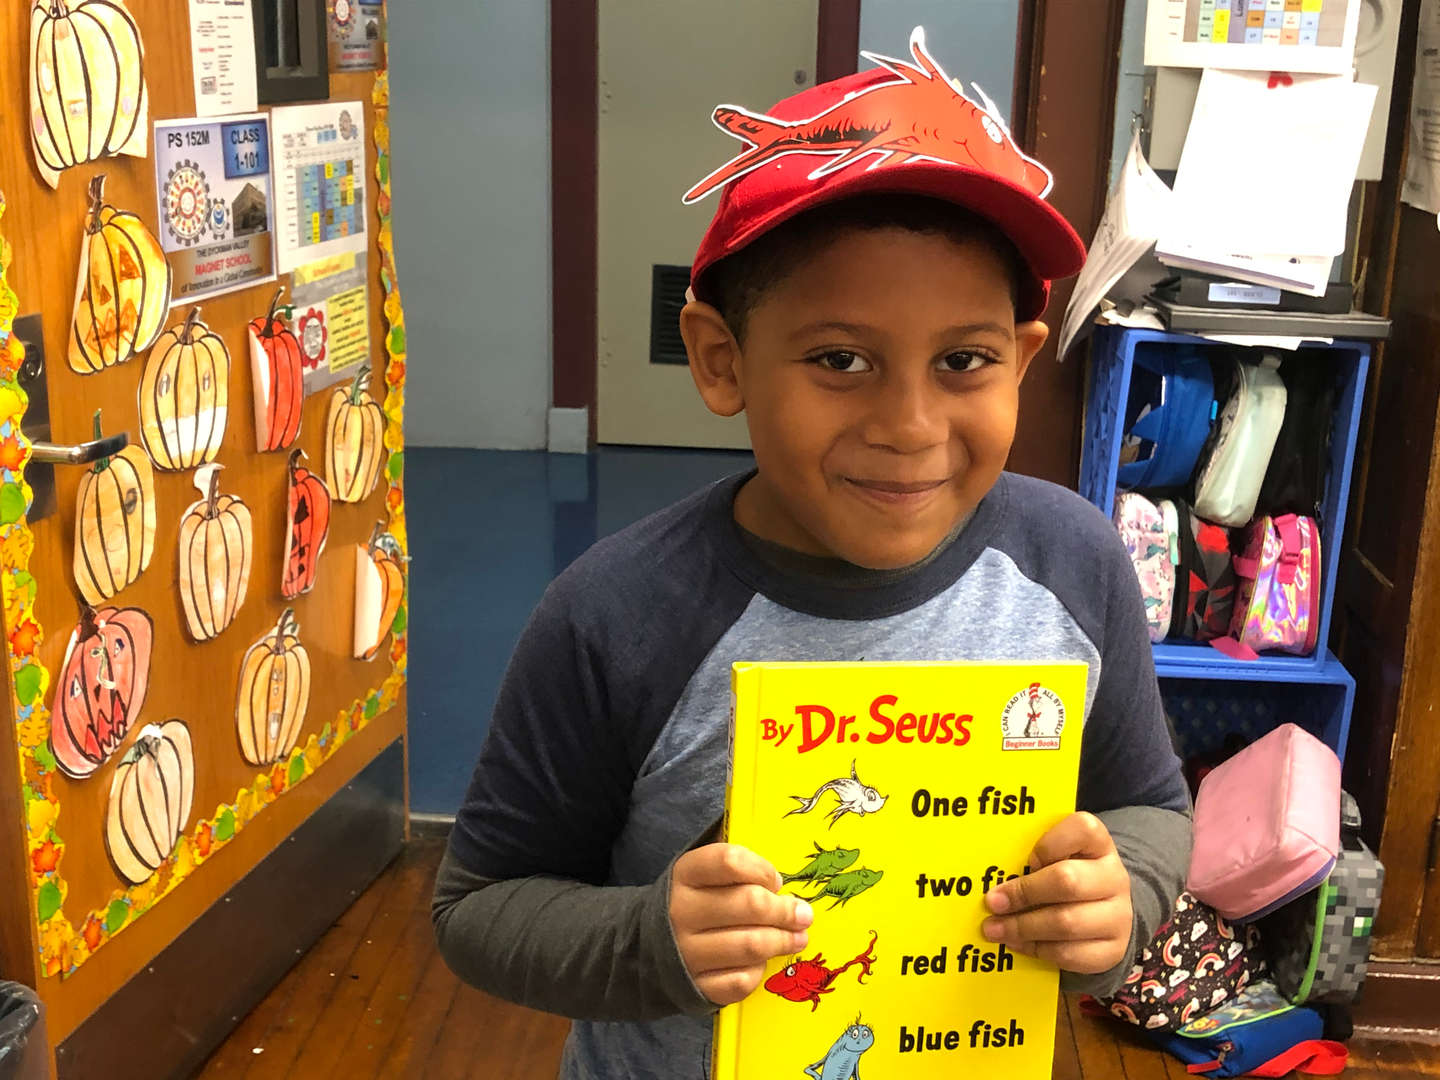 Student holding Dr. Seuss book